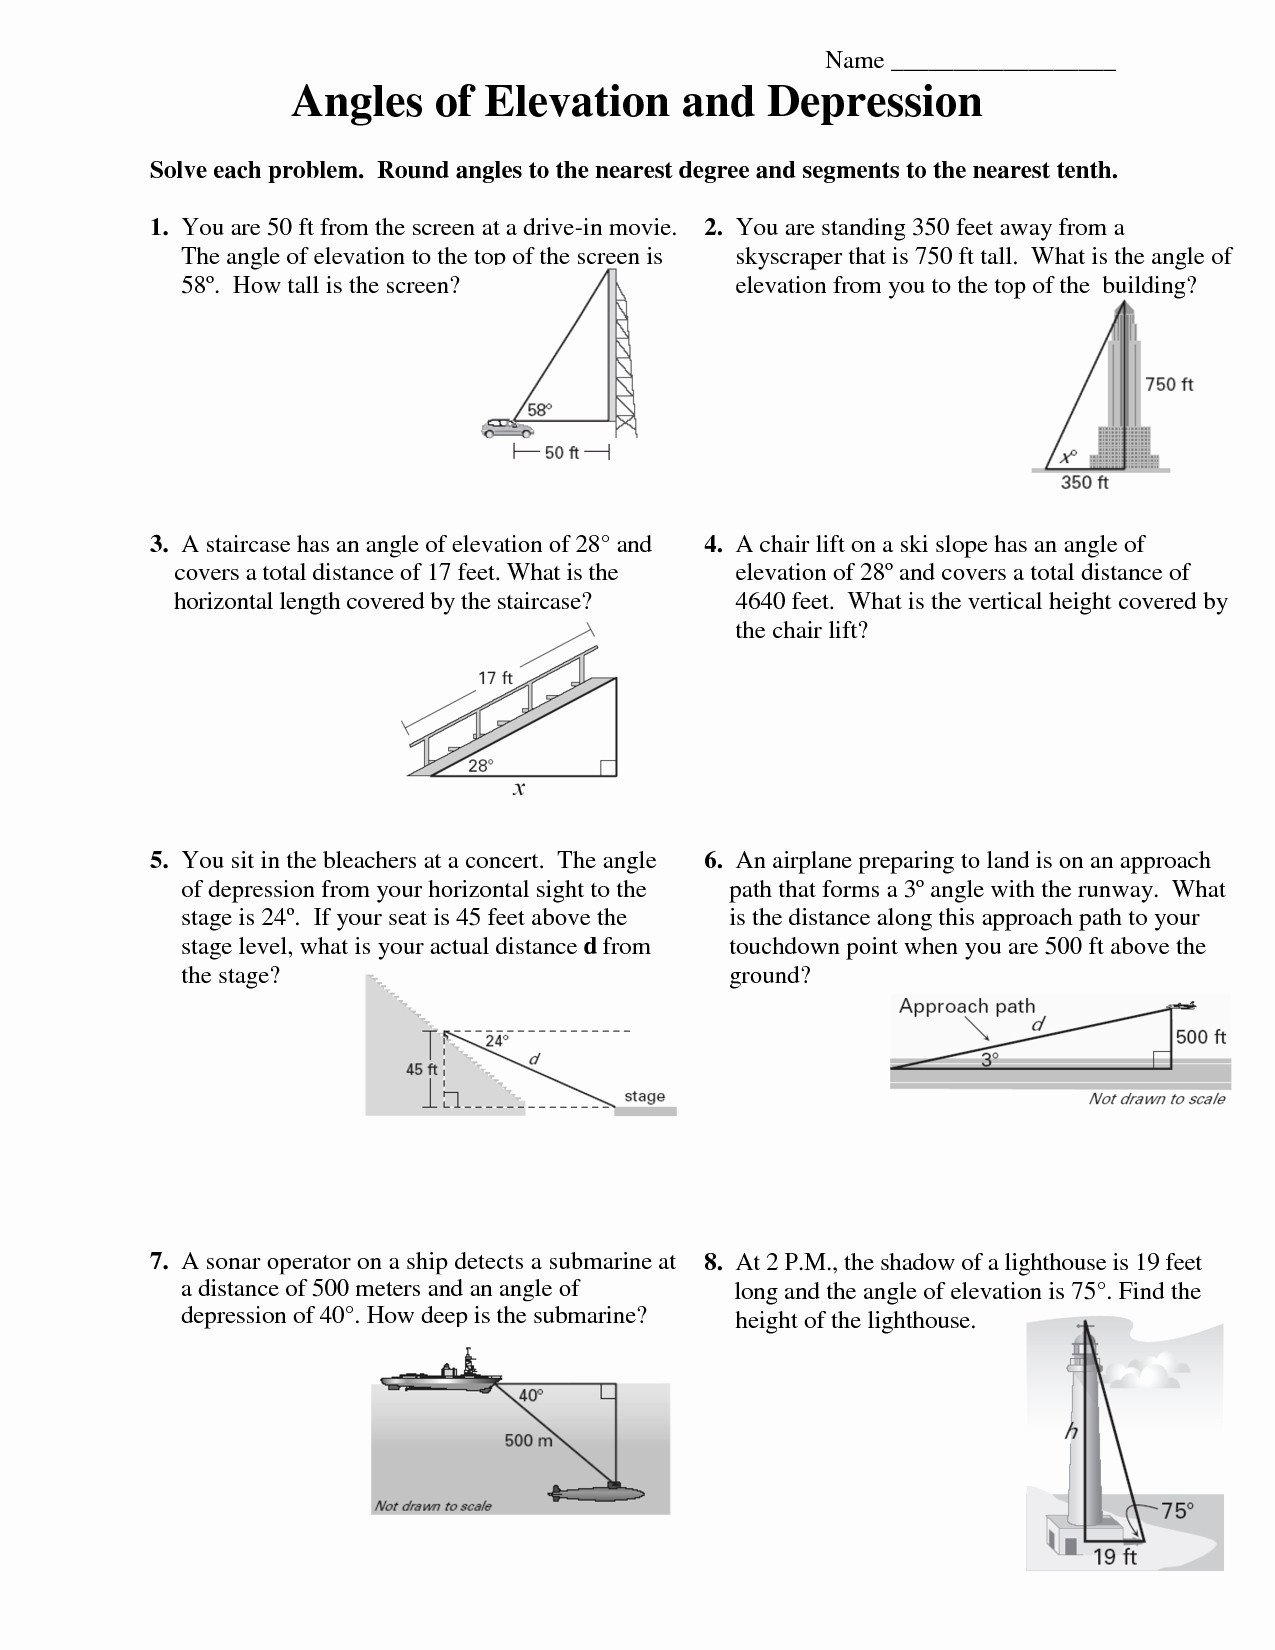 Angle Of Elevation And Depression Worksheet With Answers  Yooob In Angles Of Depression And Elevation Worksheet Answers